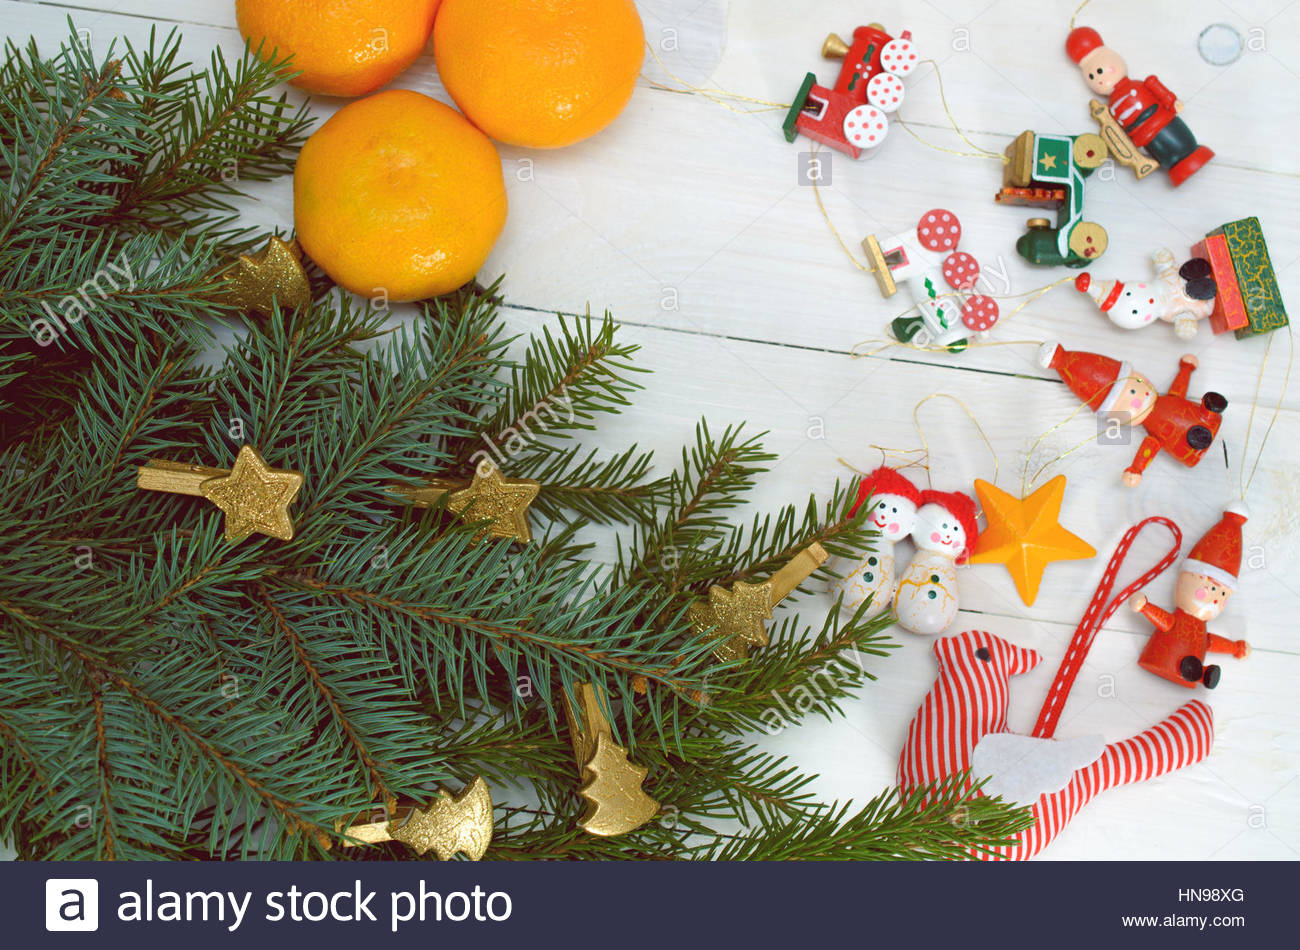 Pine Branches, Christmas Toys And Tangerines On A White Background - Stock Image